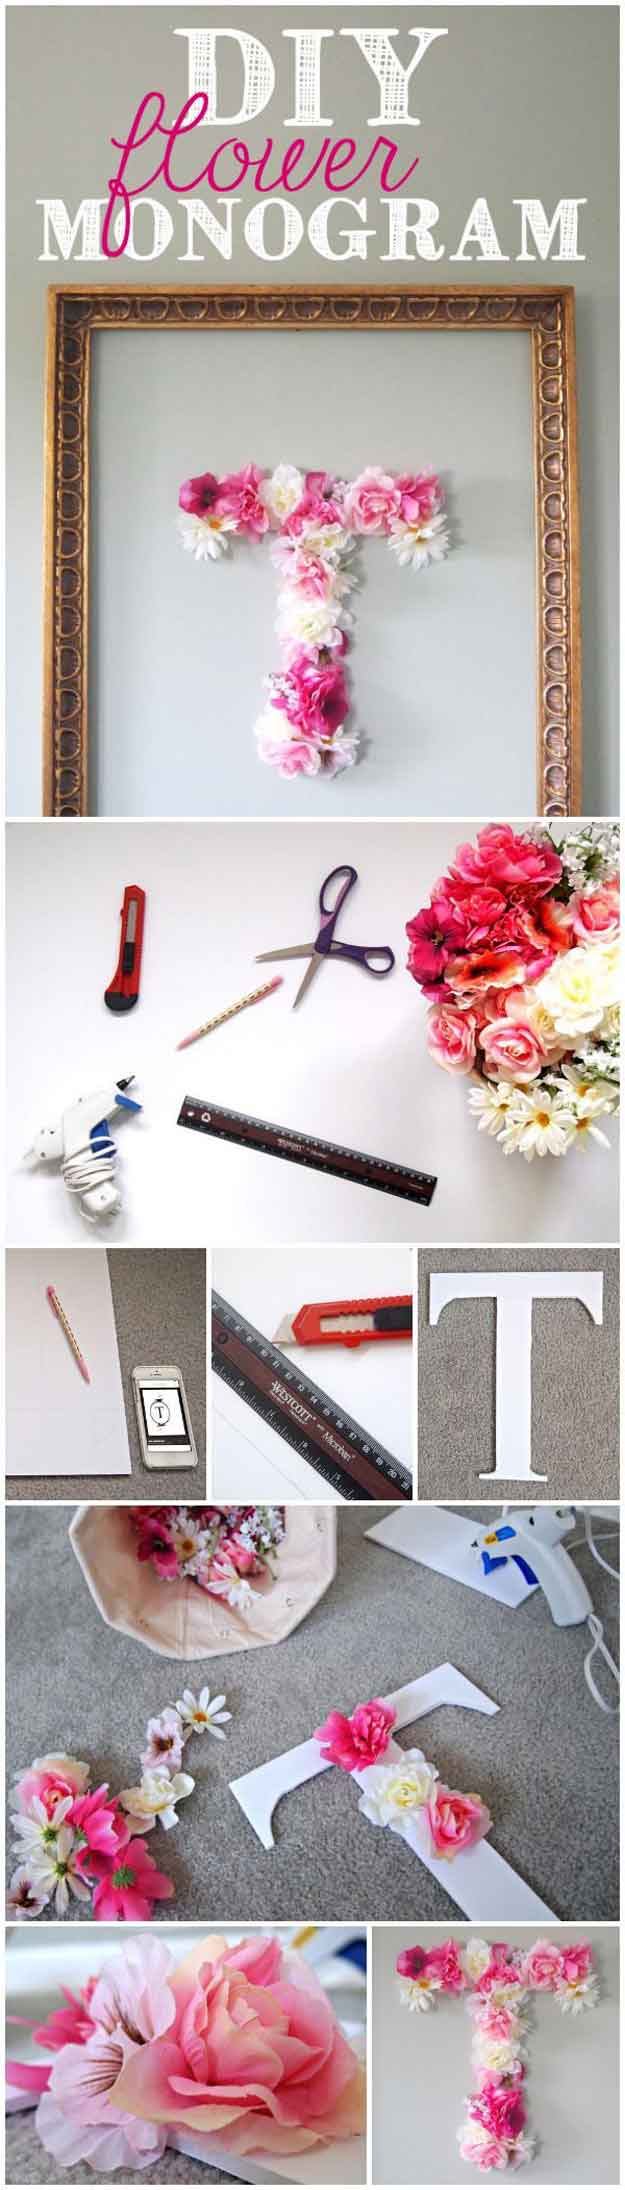 DIY Flower Monogram.